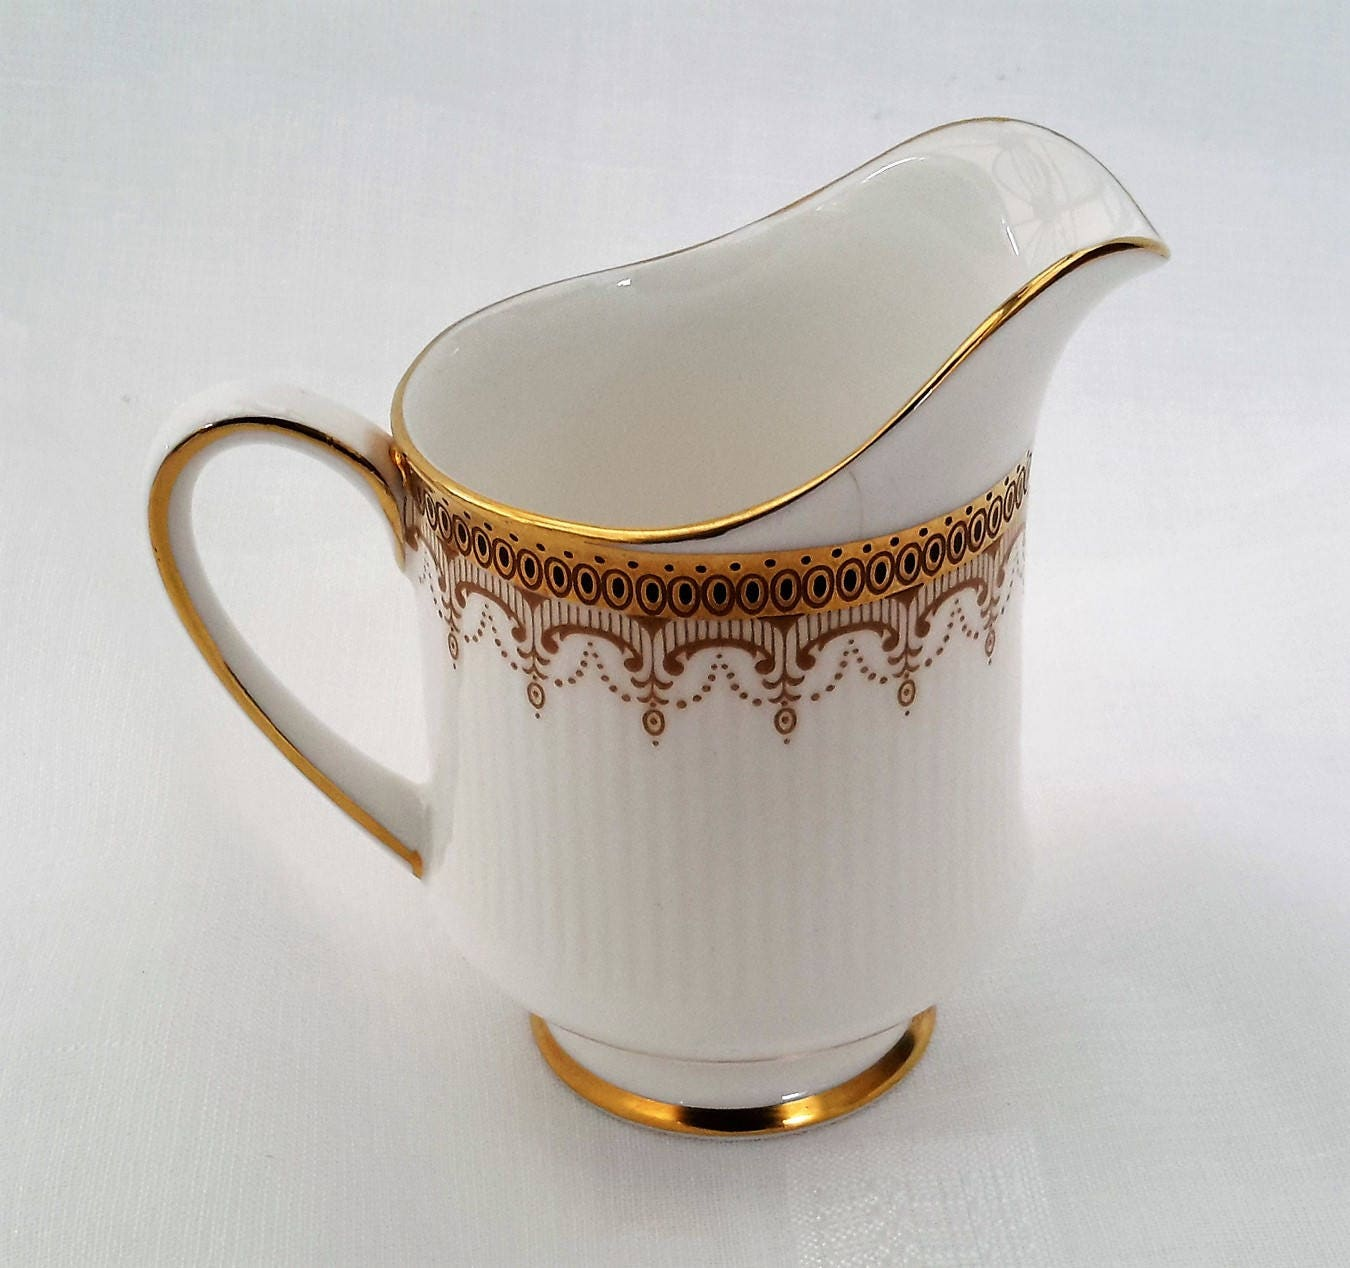 Paragon Athena creamer or milk jug fine bone china made in England by appointment of Her Majesty the Queen. White and gold china jug.